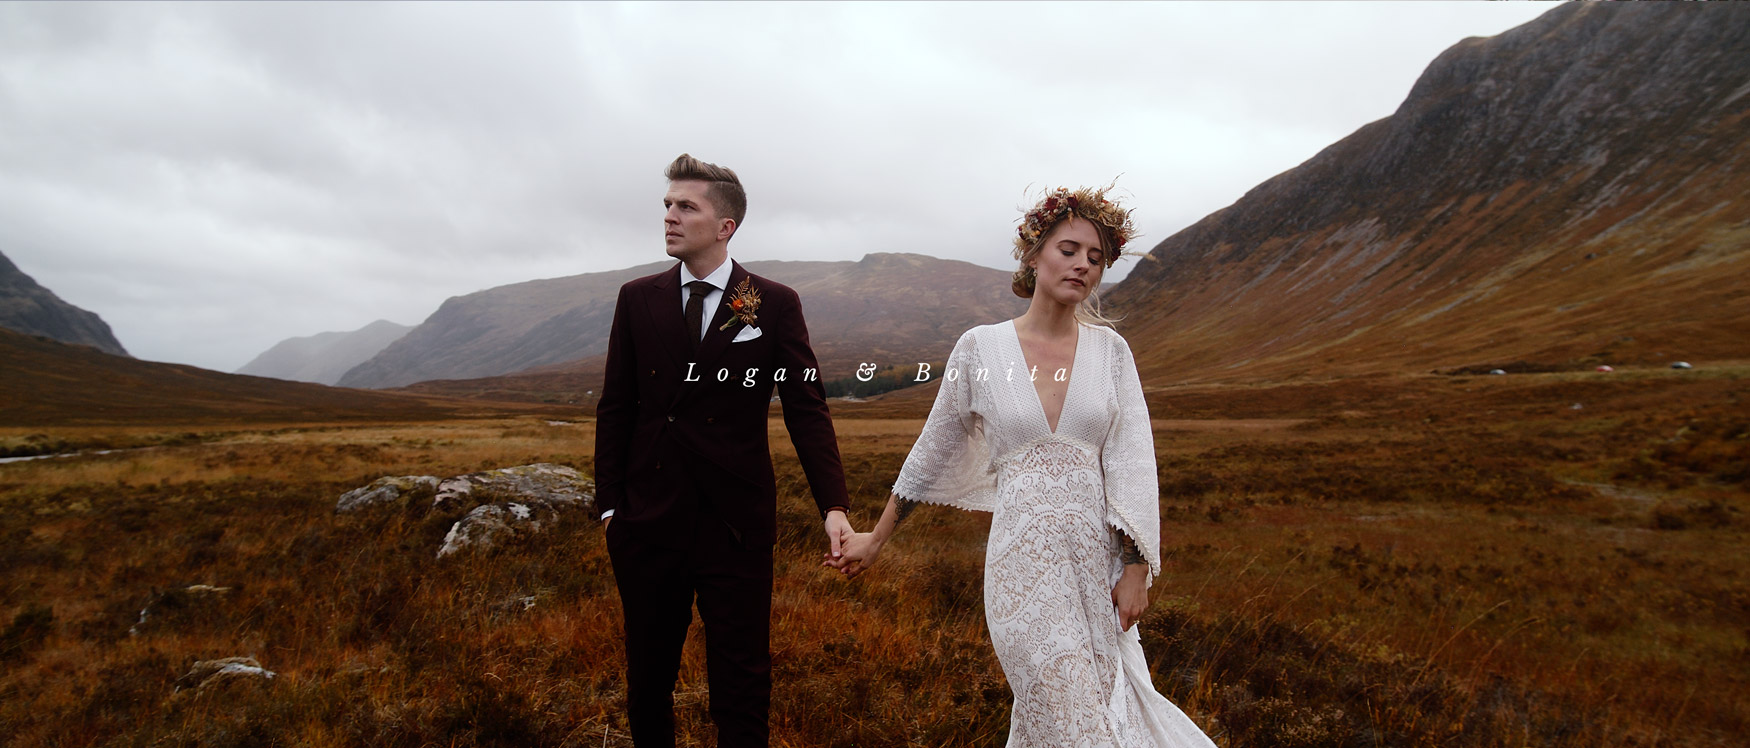 Logan + Bonita | Glencoe, United Kingdom | a hotel